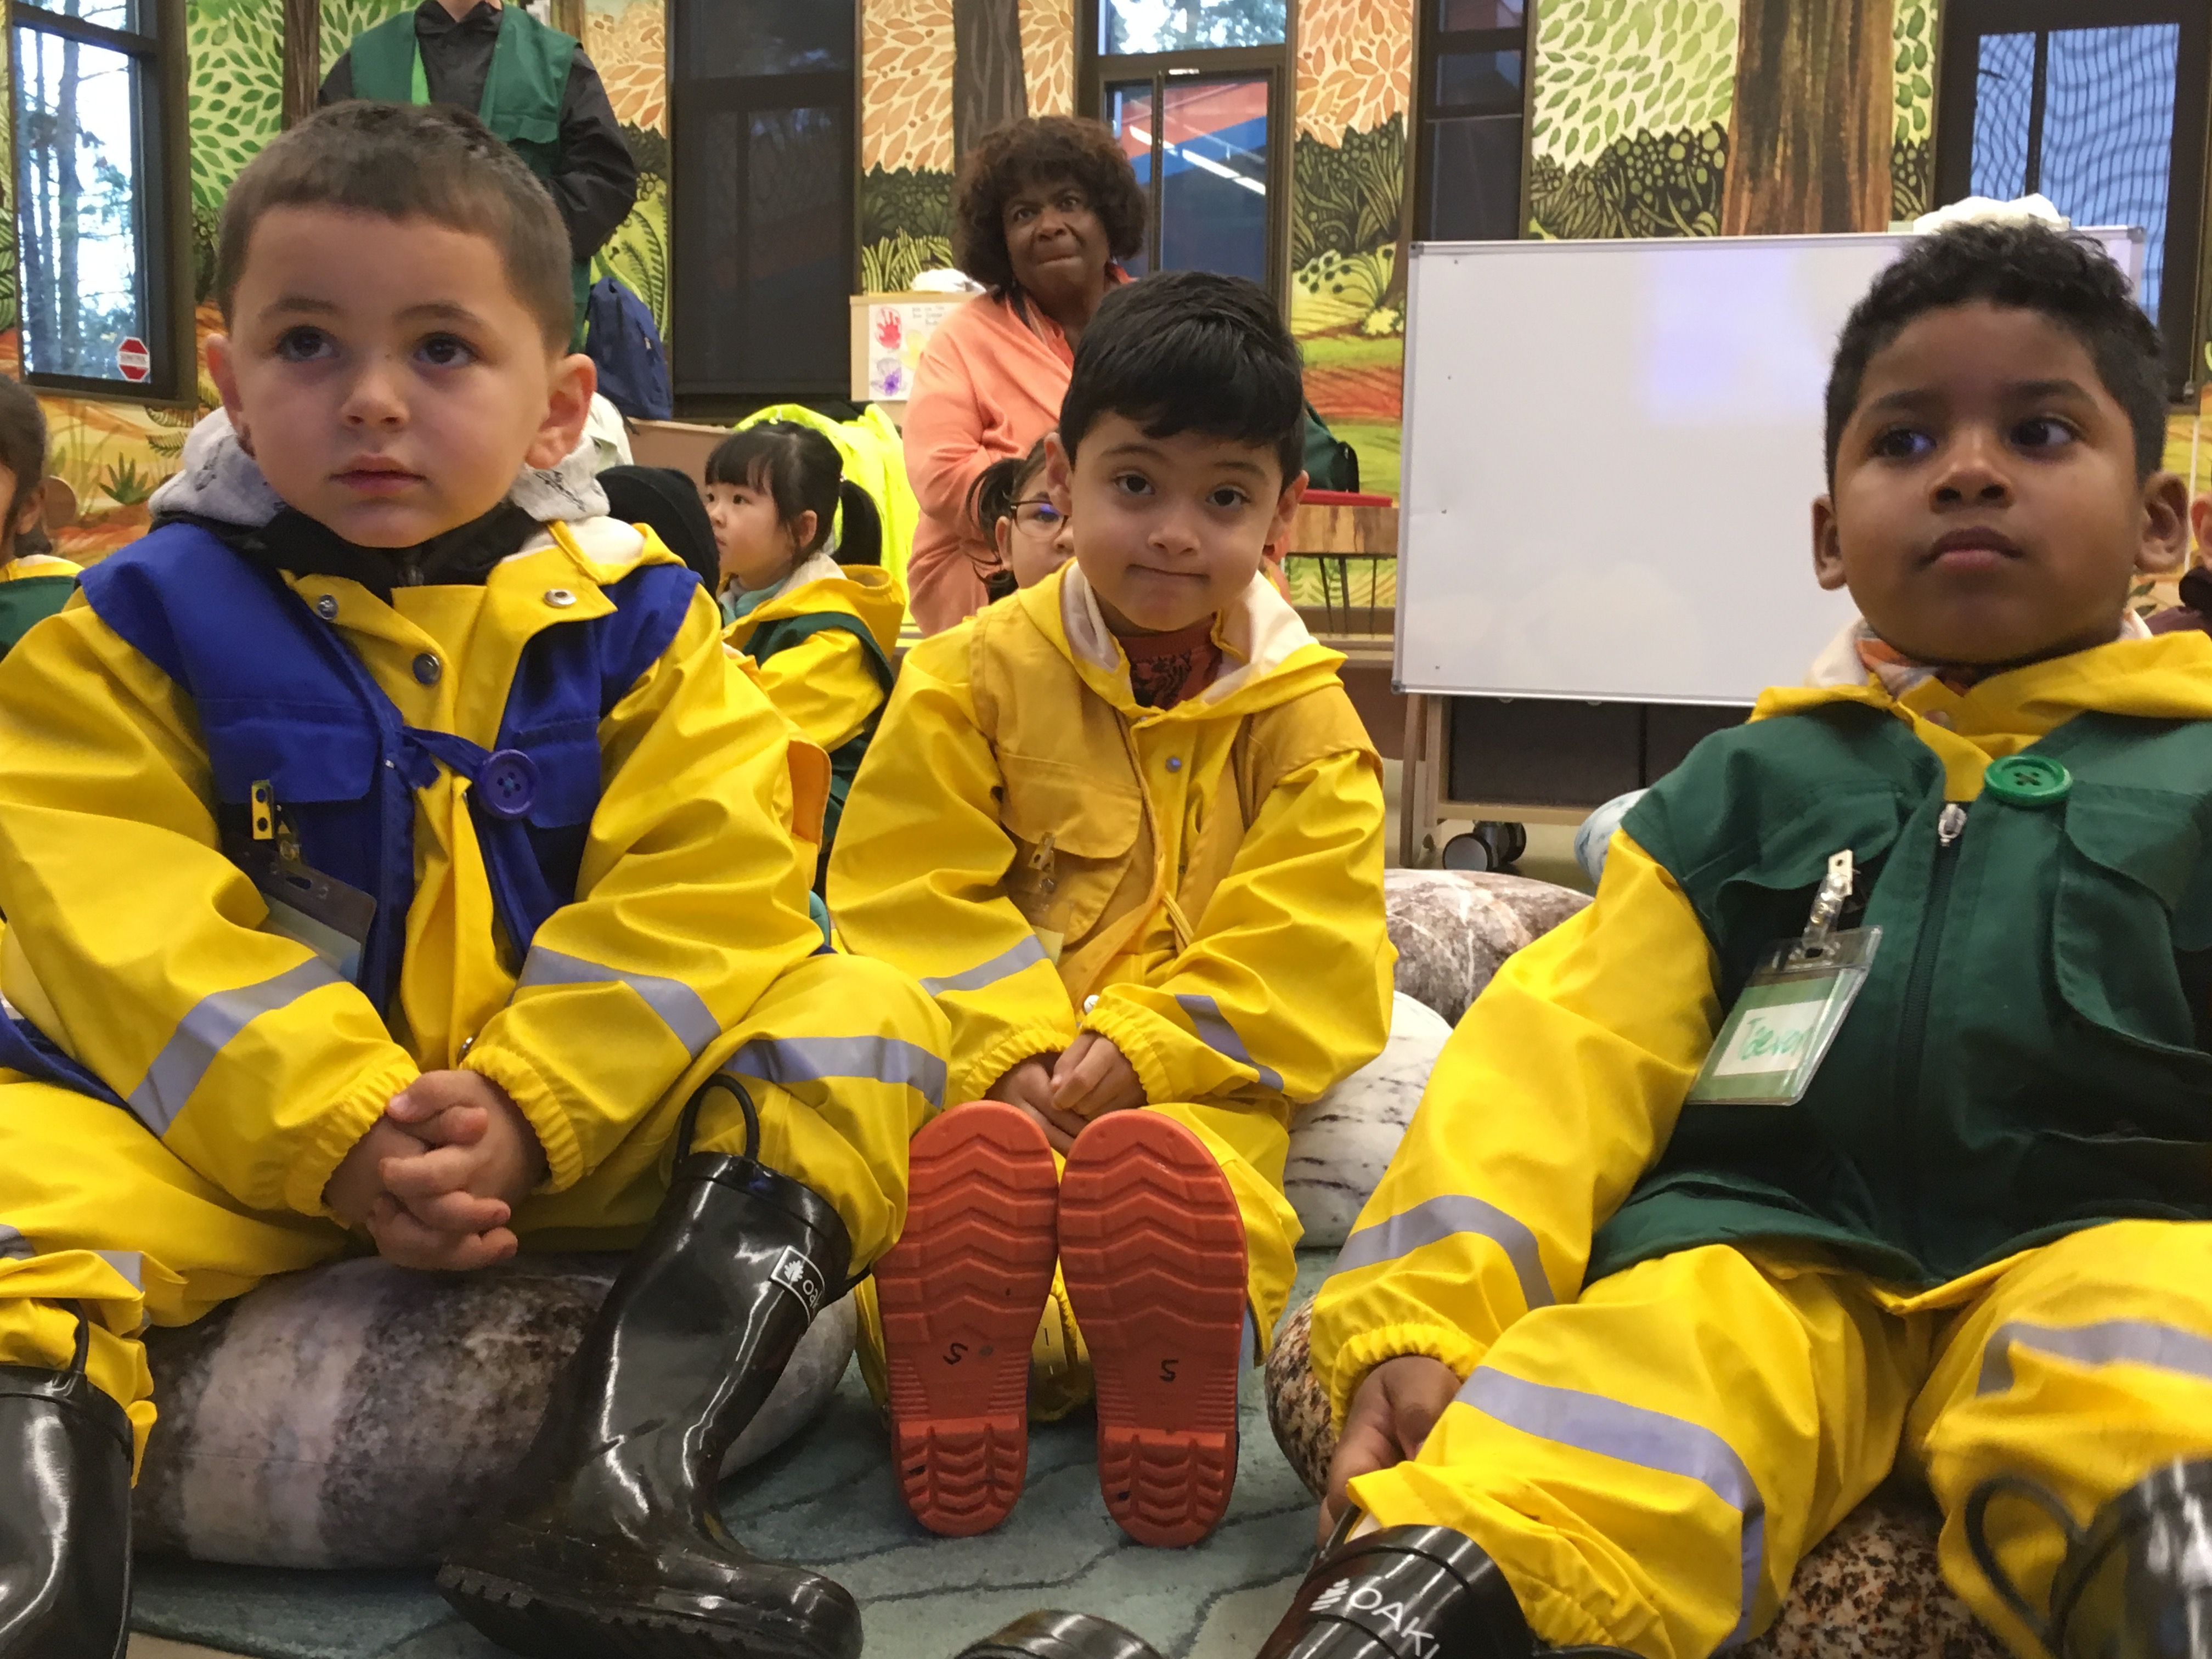 NATURAL CURIOSITY—Superintendent Carla Santorno looks on as visiting preschool students prepare for a nature hike in the rain at the Science and Math Institute, also known as SAMI, which may be the only high school in the nation that's located inside a zoo.